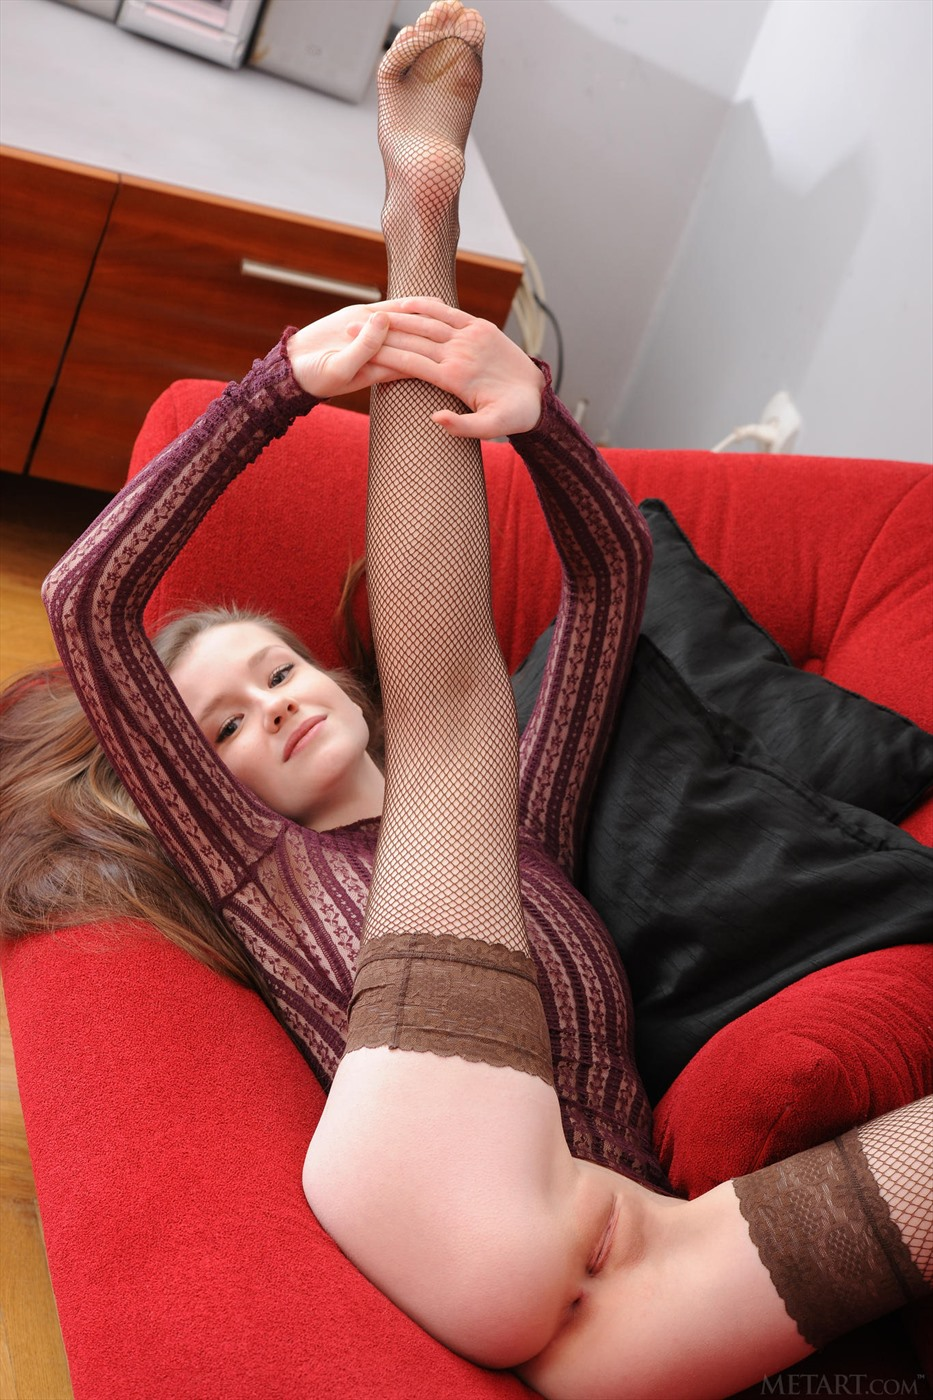 naked-girls-in-stockings-mix-vol6-05